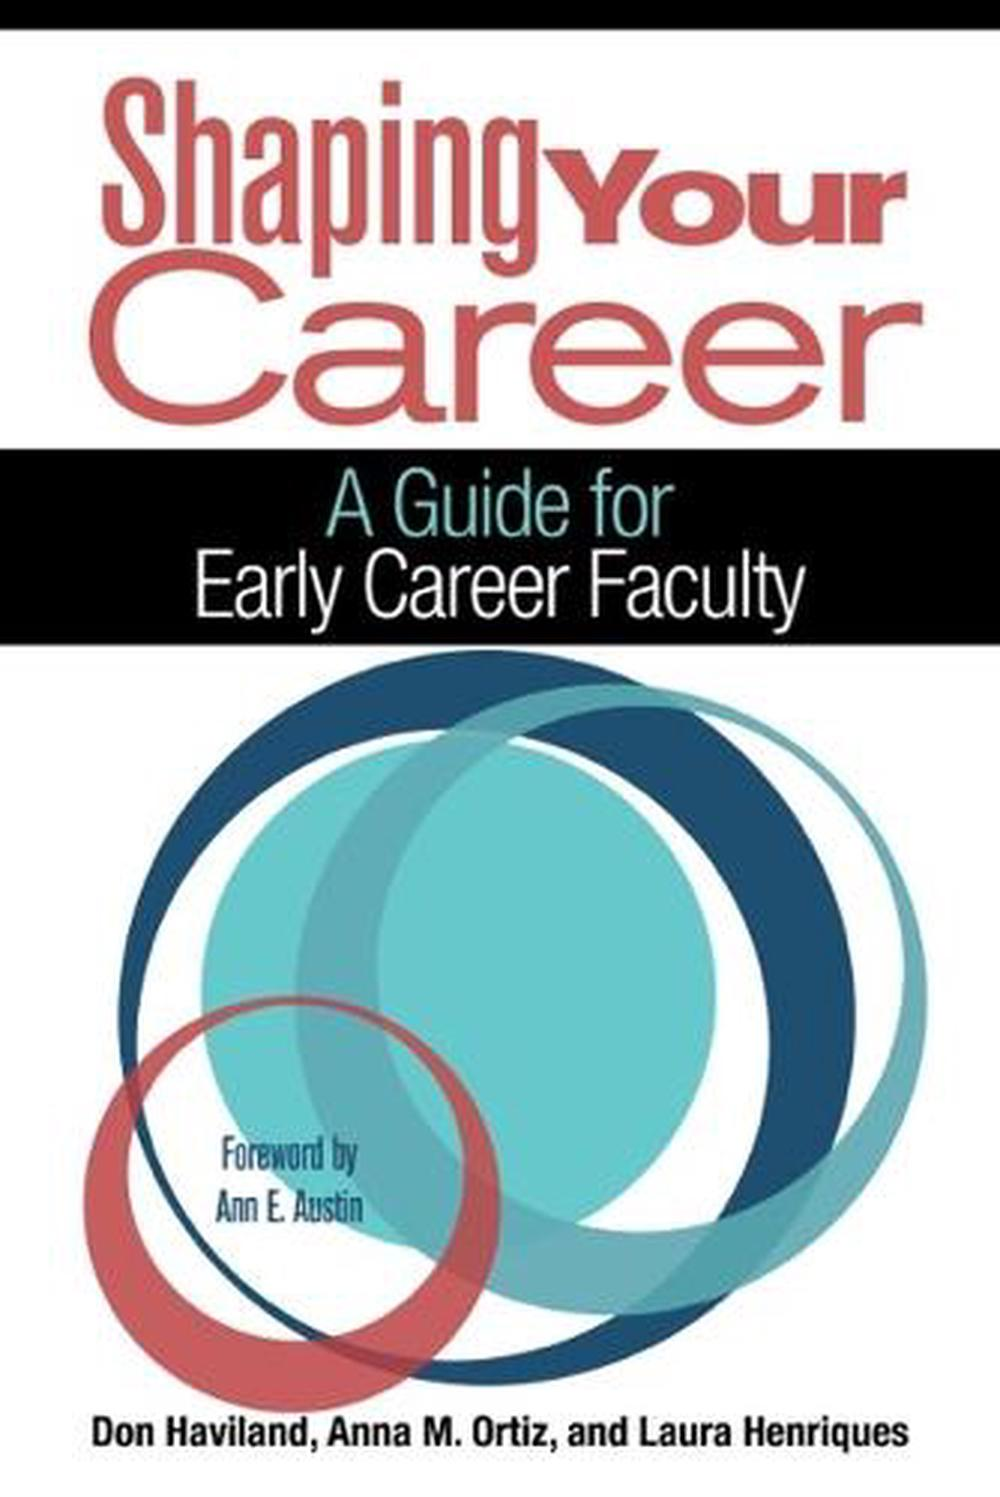 Shaping Your Career: A Guide for Early Career Faculty by Don Haviland Hardcover